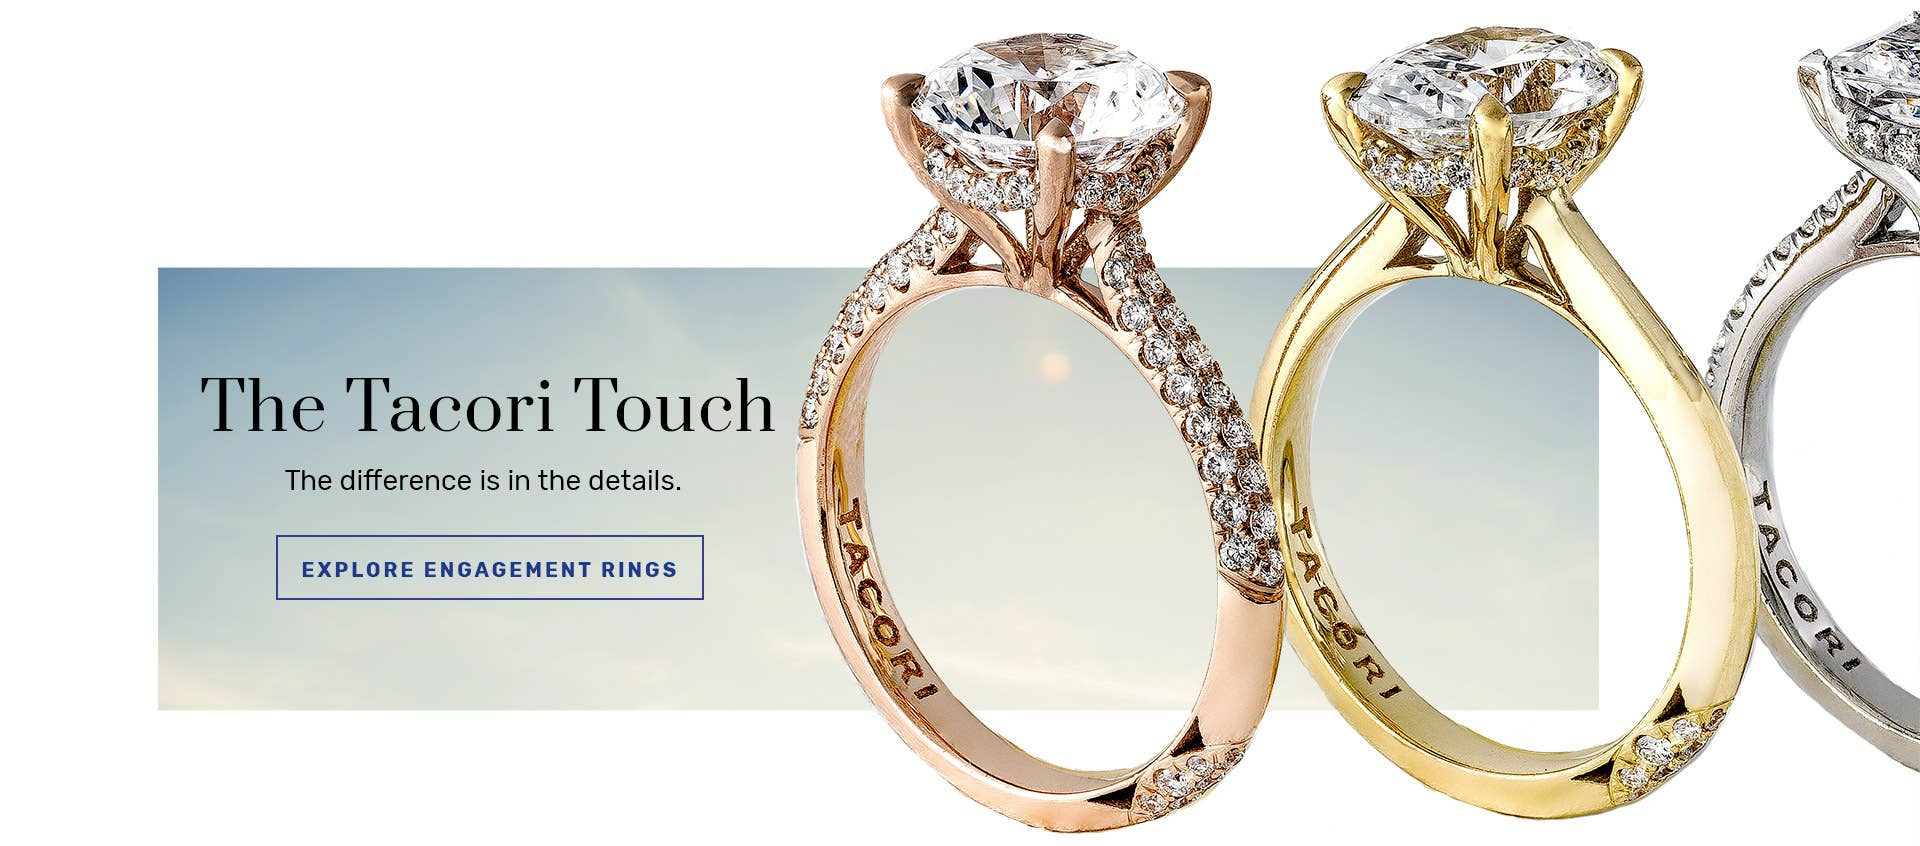 The Tacori Touch